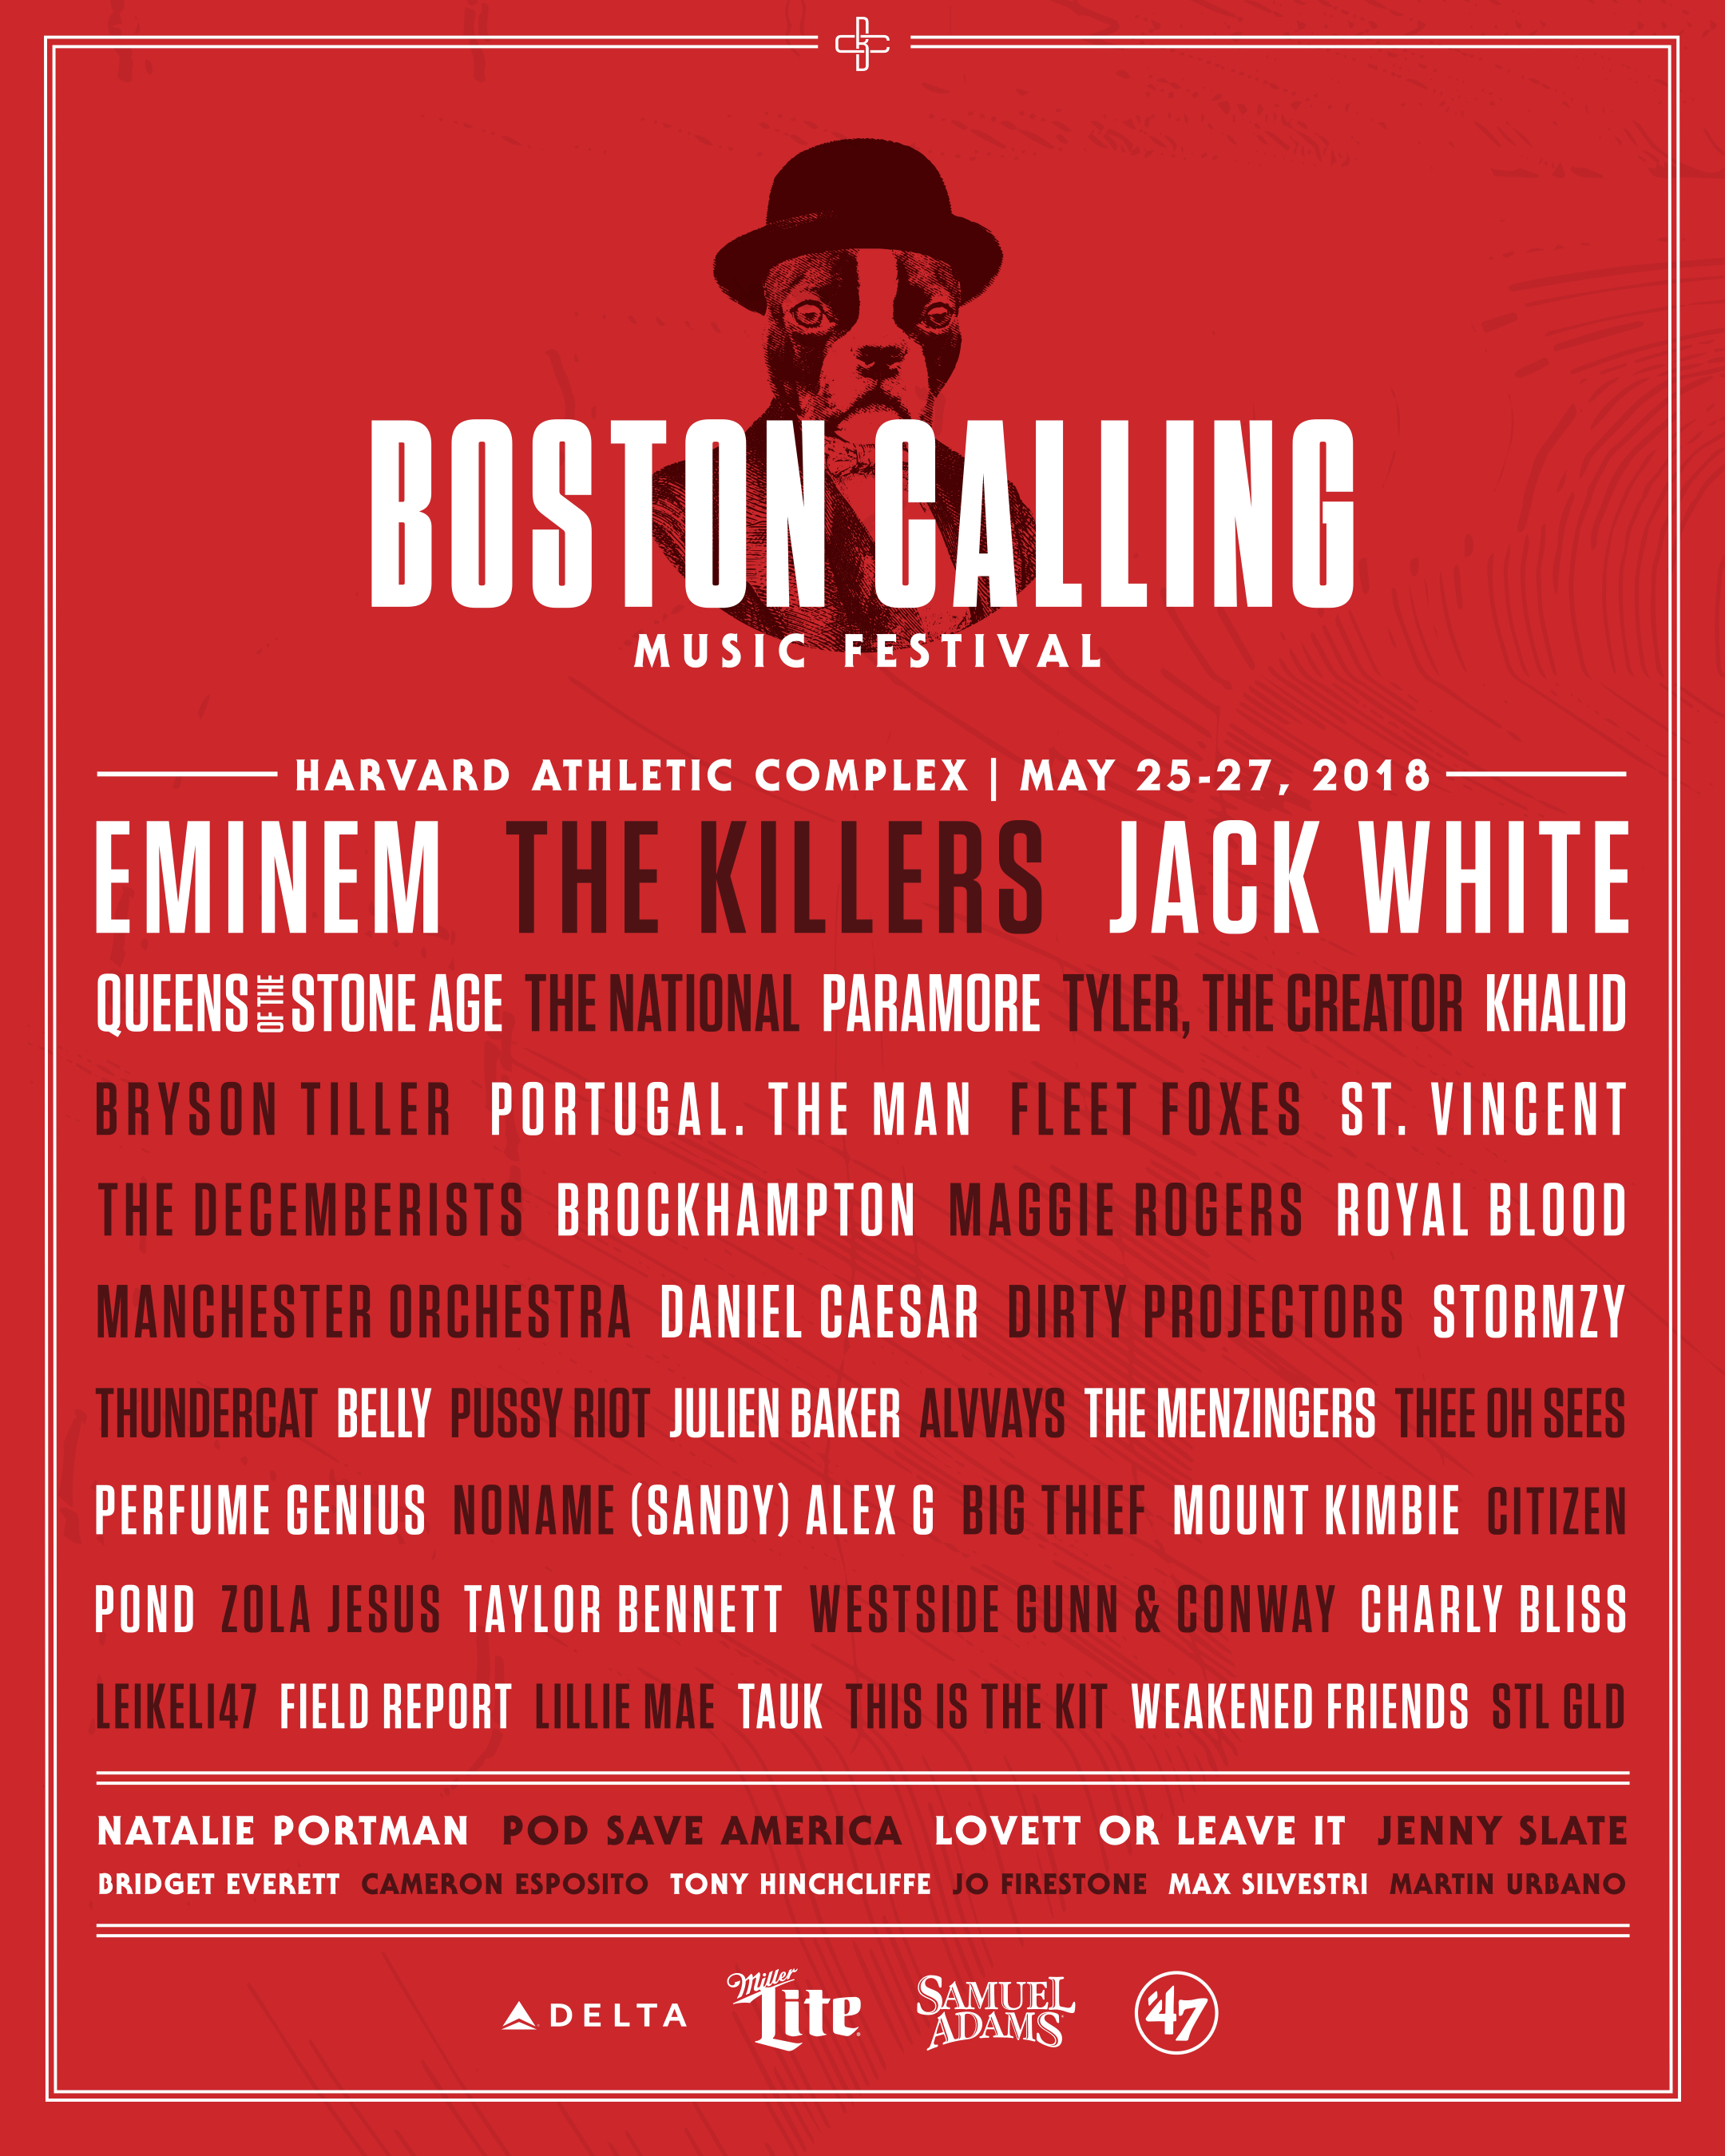 boston calling 2018 lineup admat Boston Calling announces 2018 lineup: Eminem, Jack White, The Killers to headline